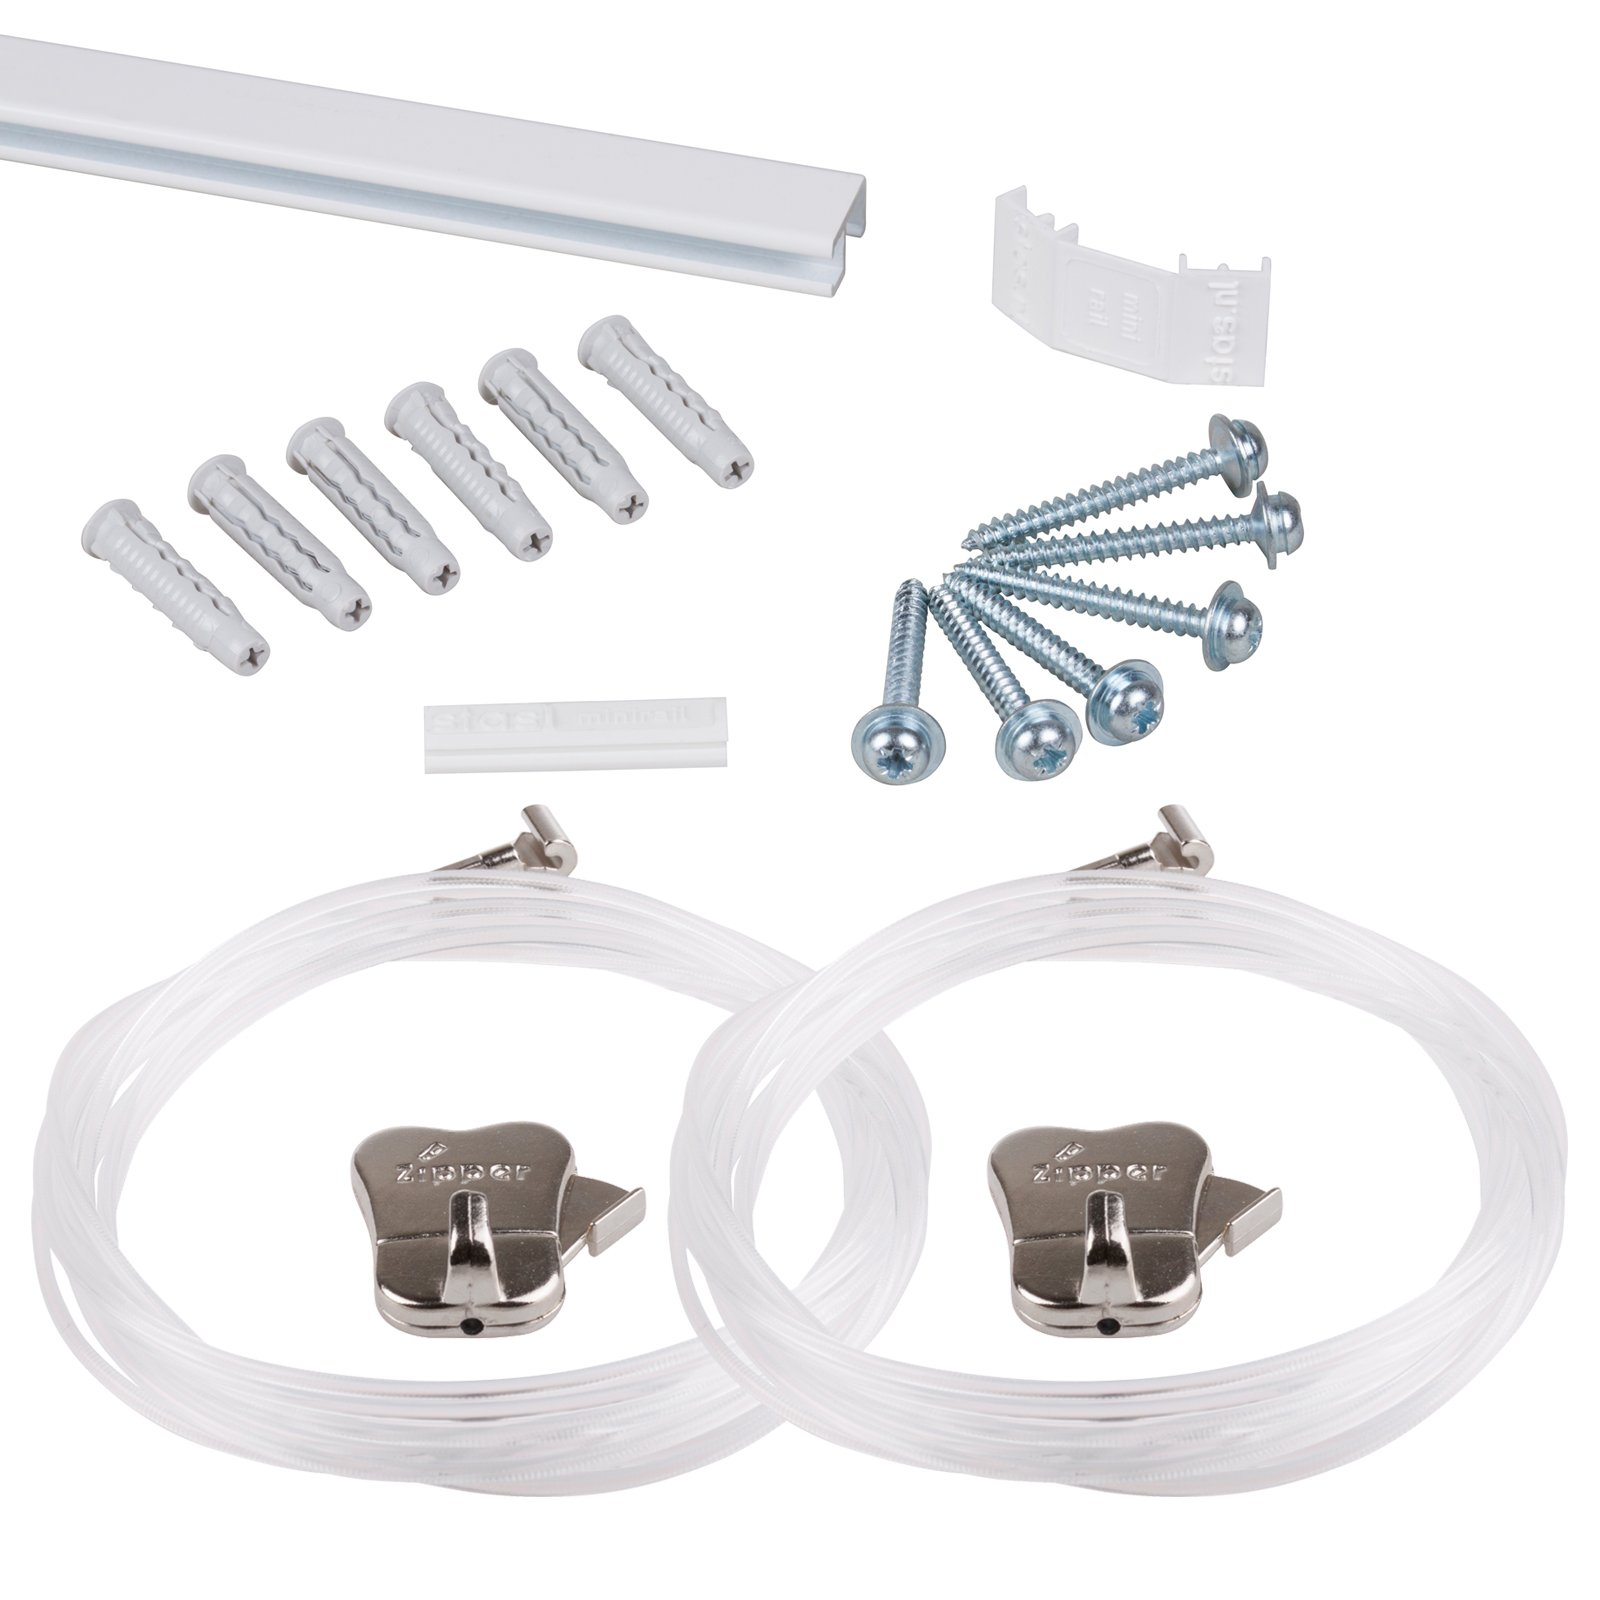 STAS Picture Hanging System minirail White 150 cm - Complete kit, incl. 2 Cords 150cm with Hooks